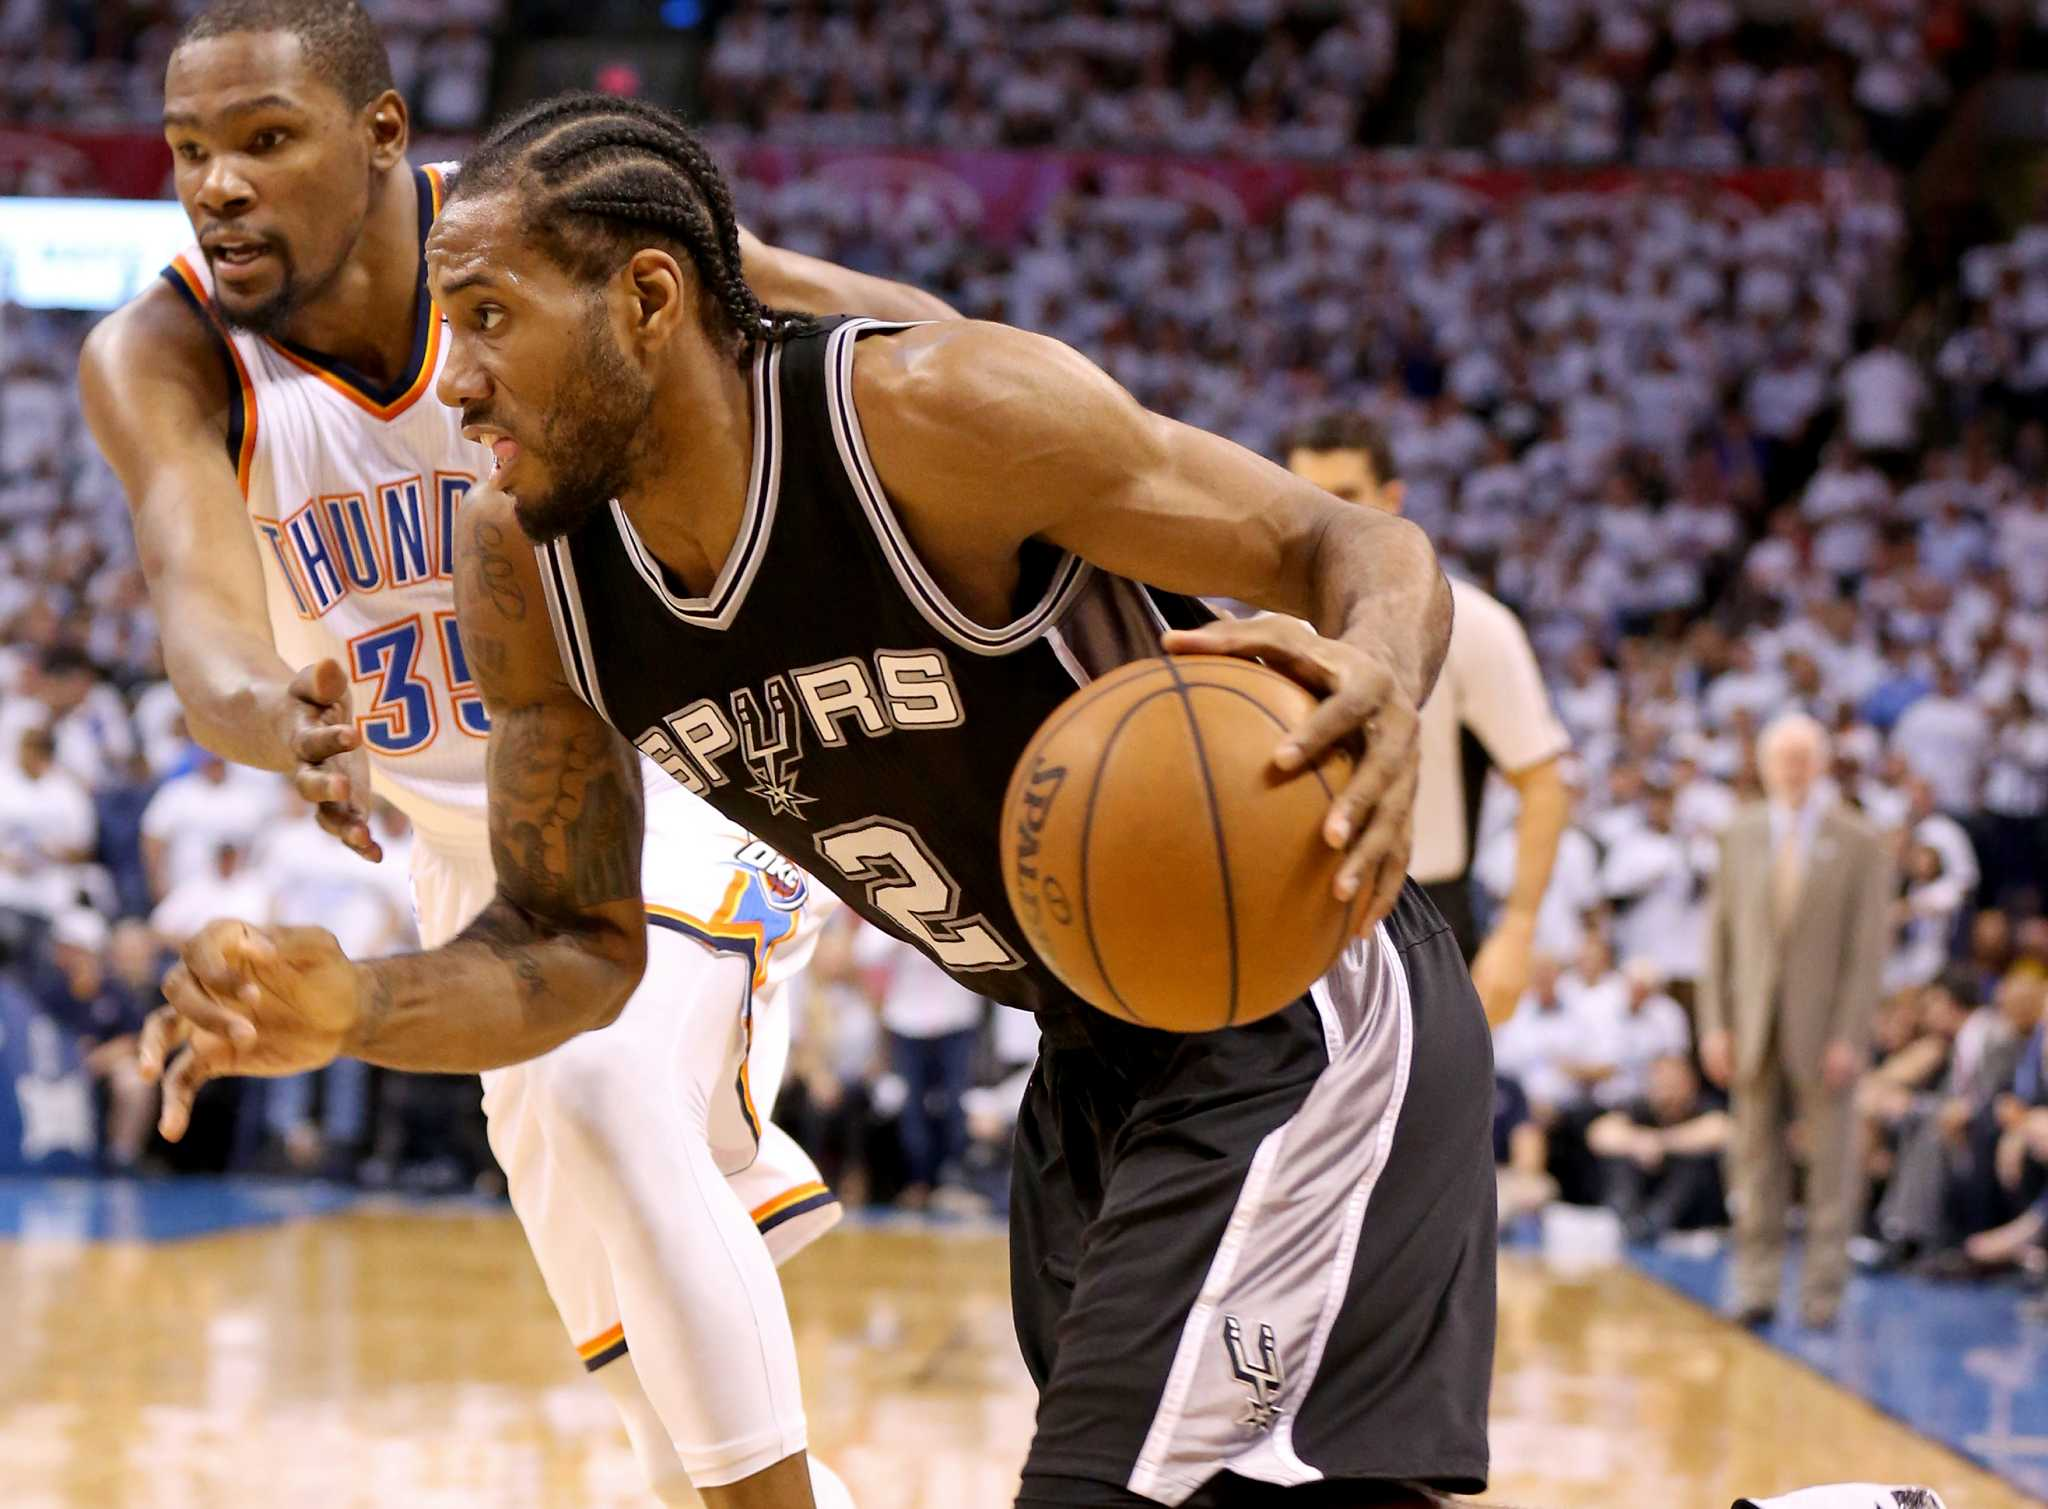 Only Spurs can prevent another identity theft - San Antonio Express-News